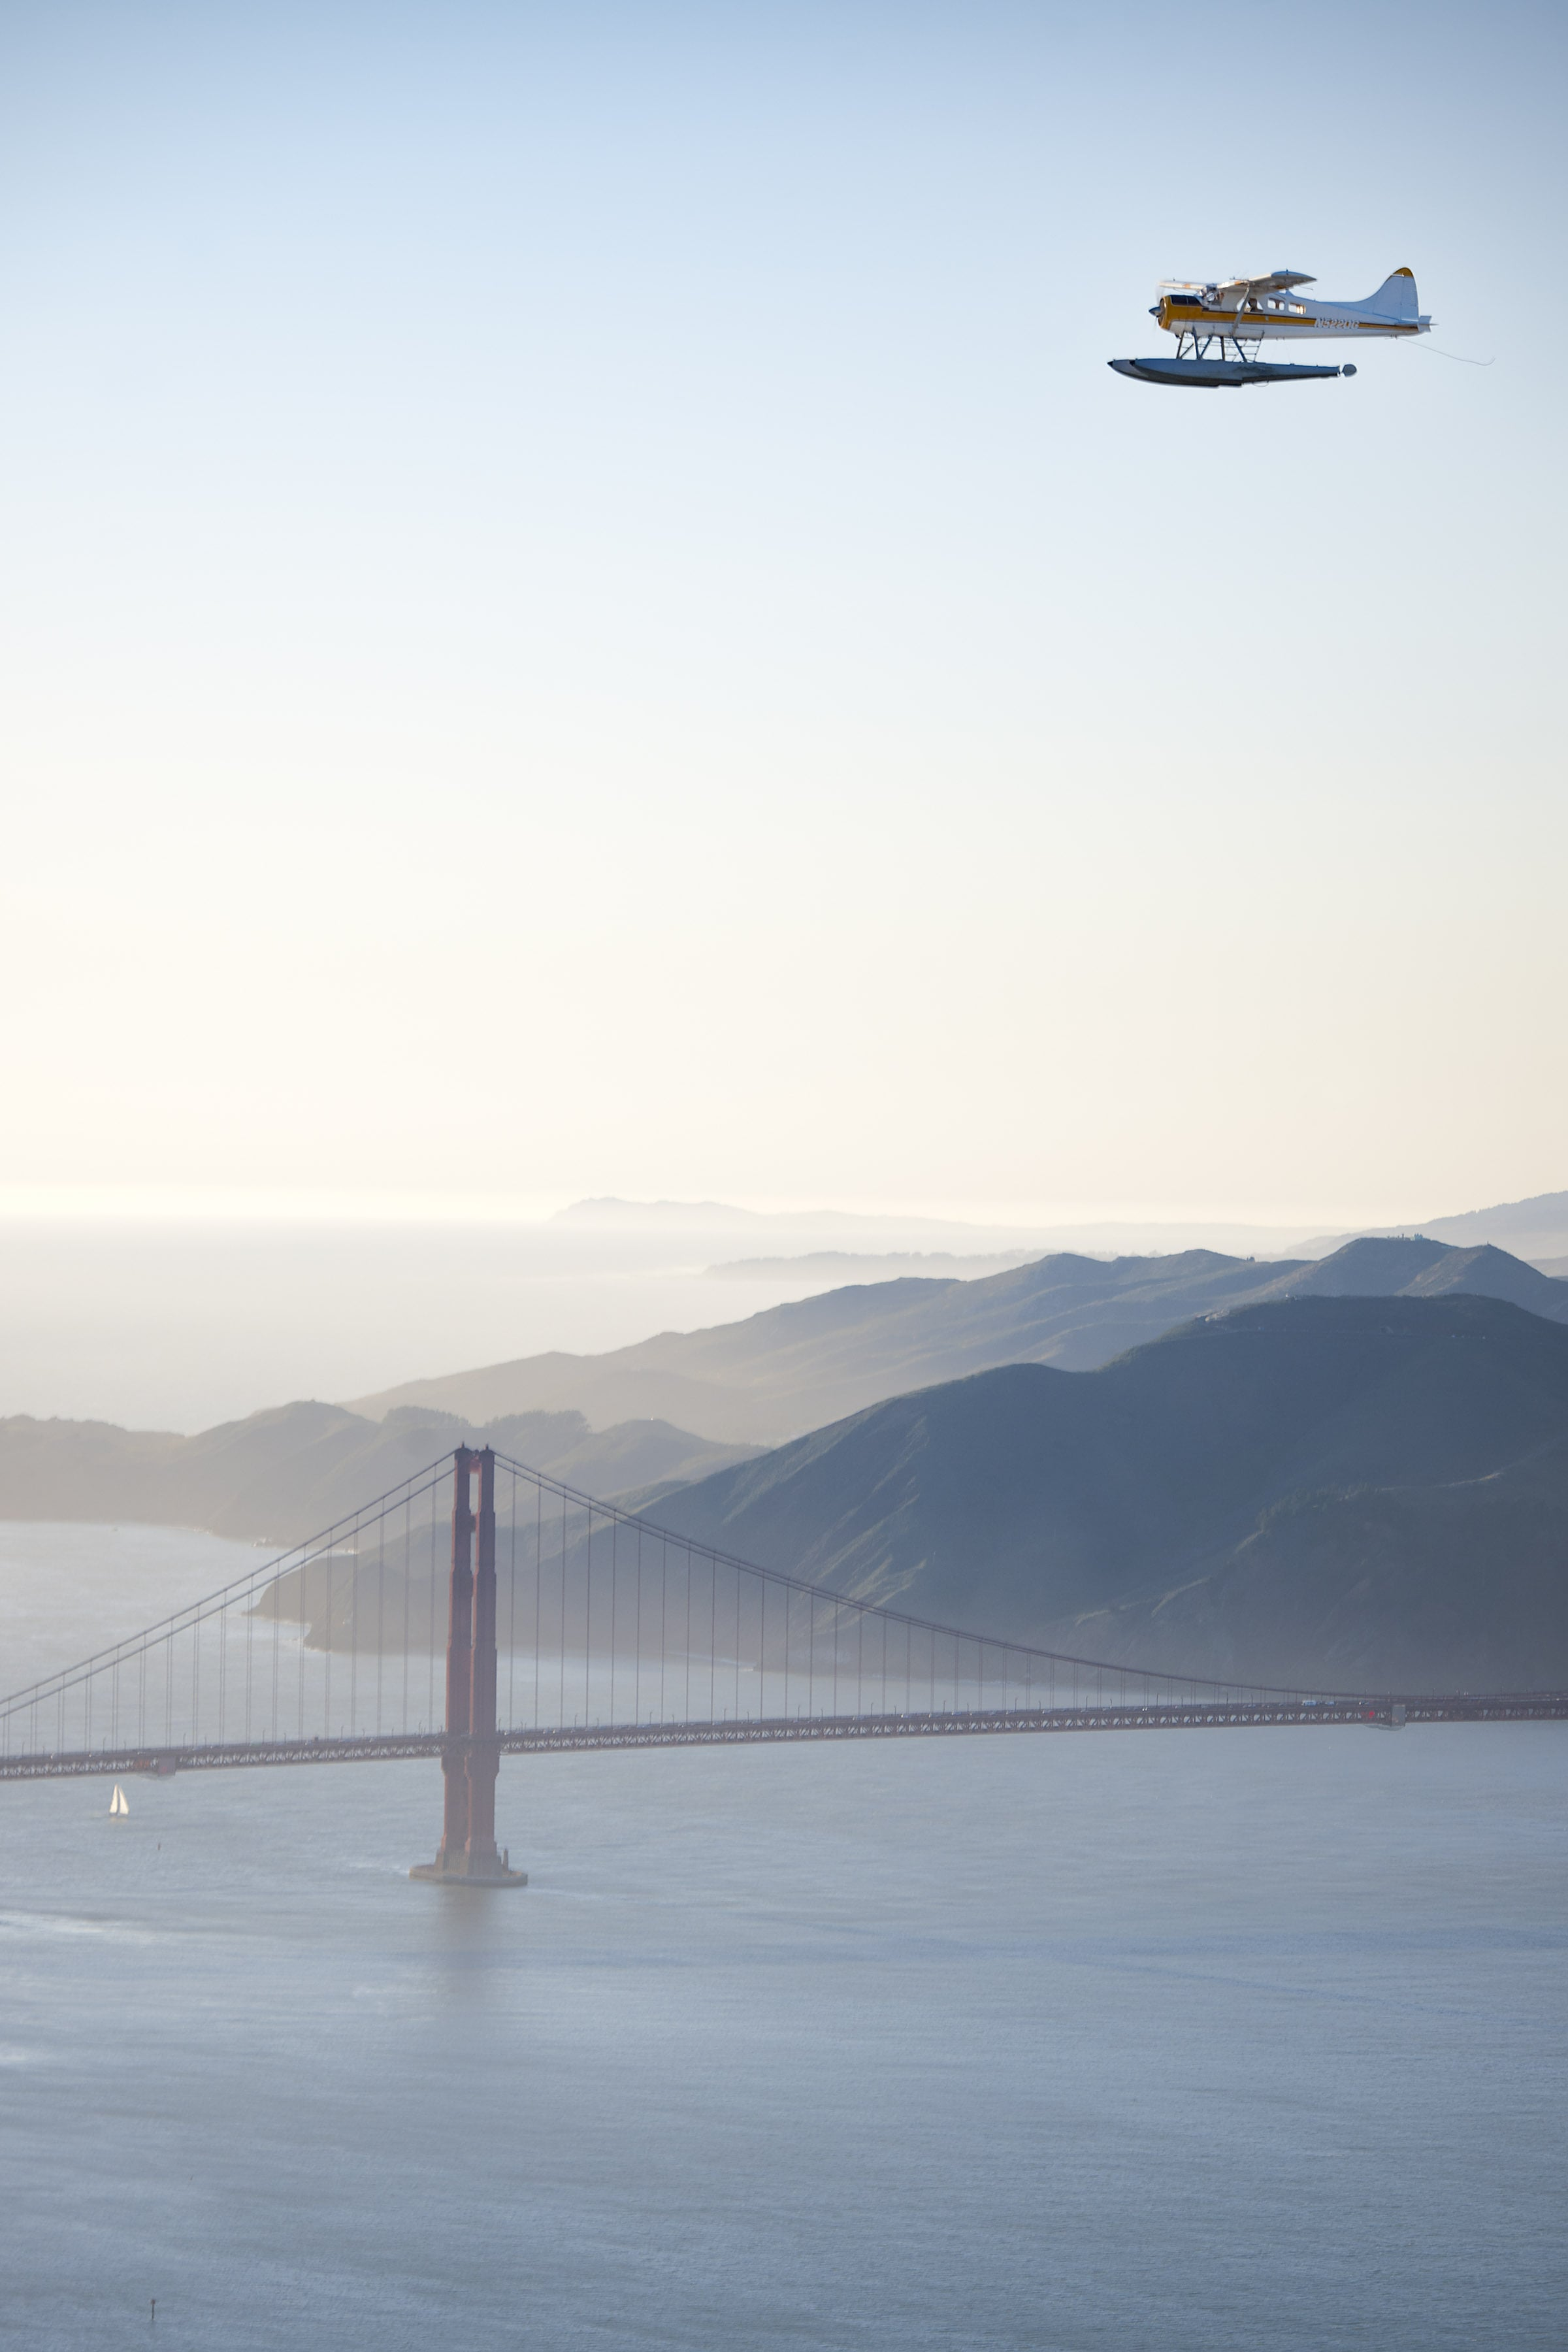 Seaplane Adventures - Golden Gate Bridge